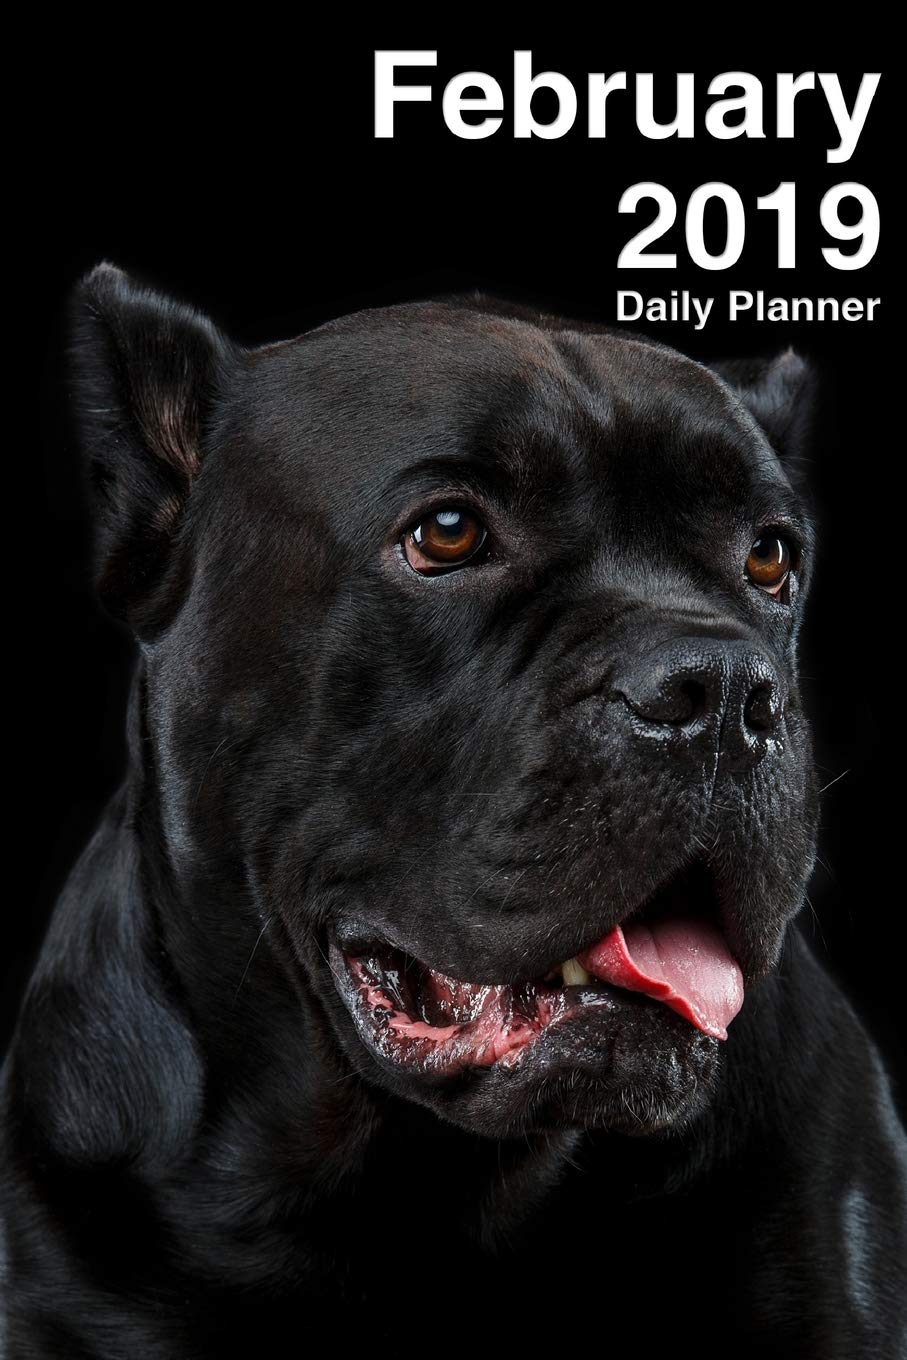 February 2019 Daily Planner: One Month Cane Corso Planner ...